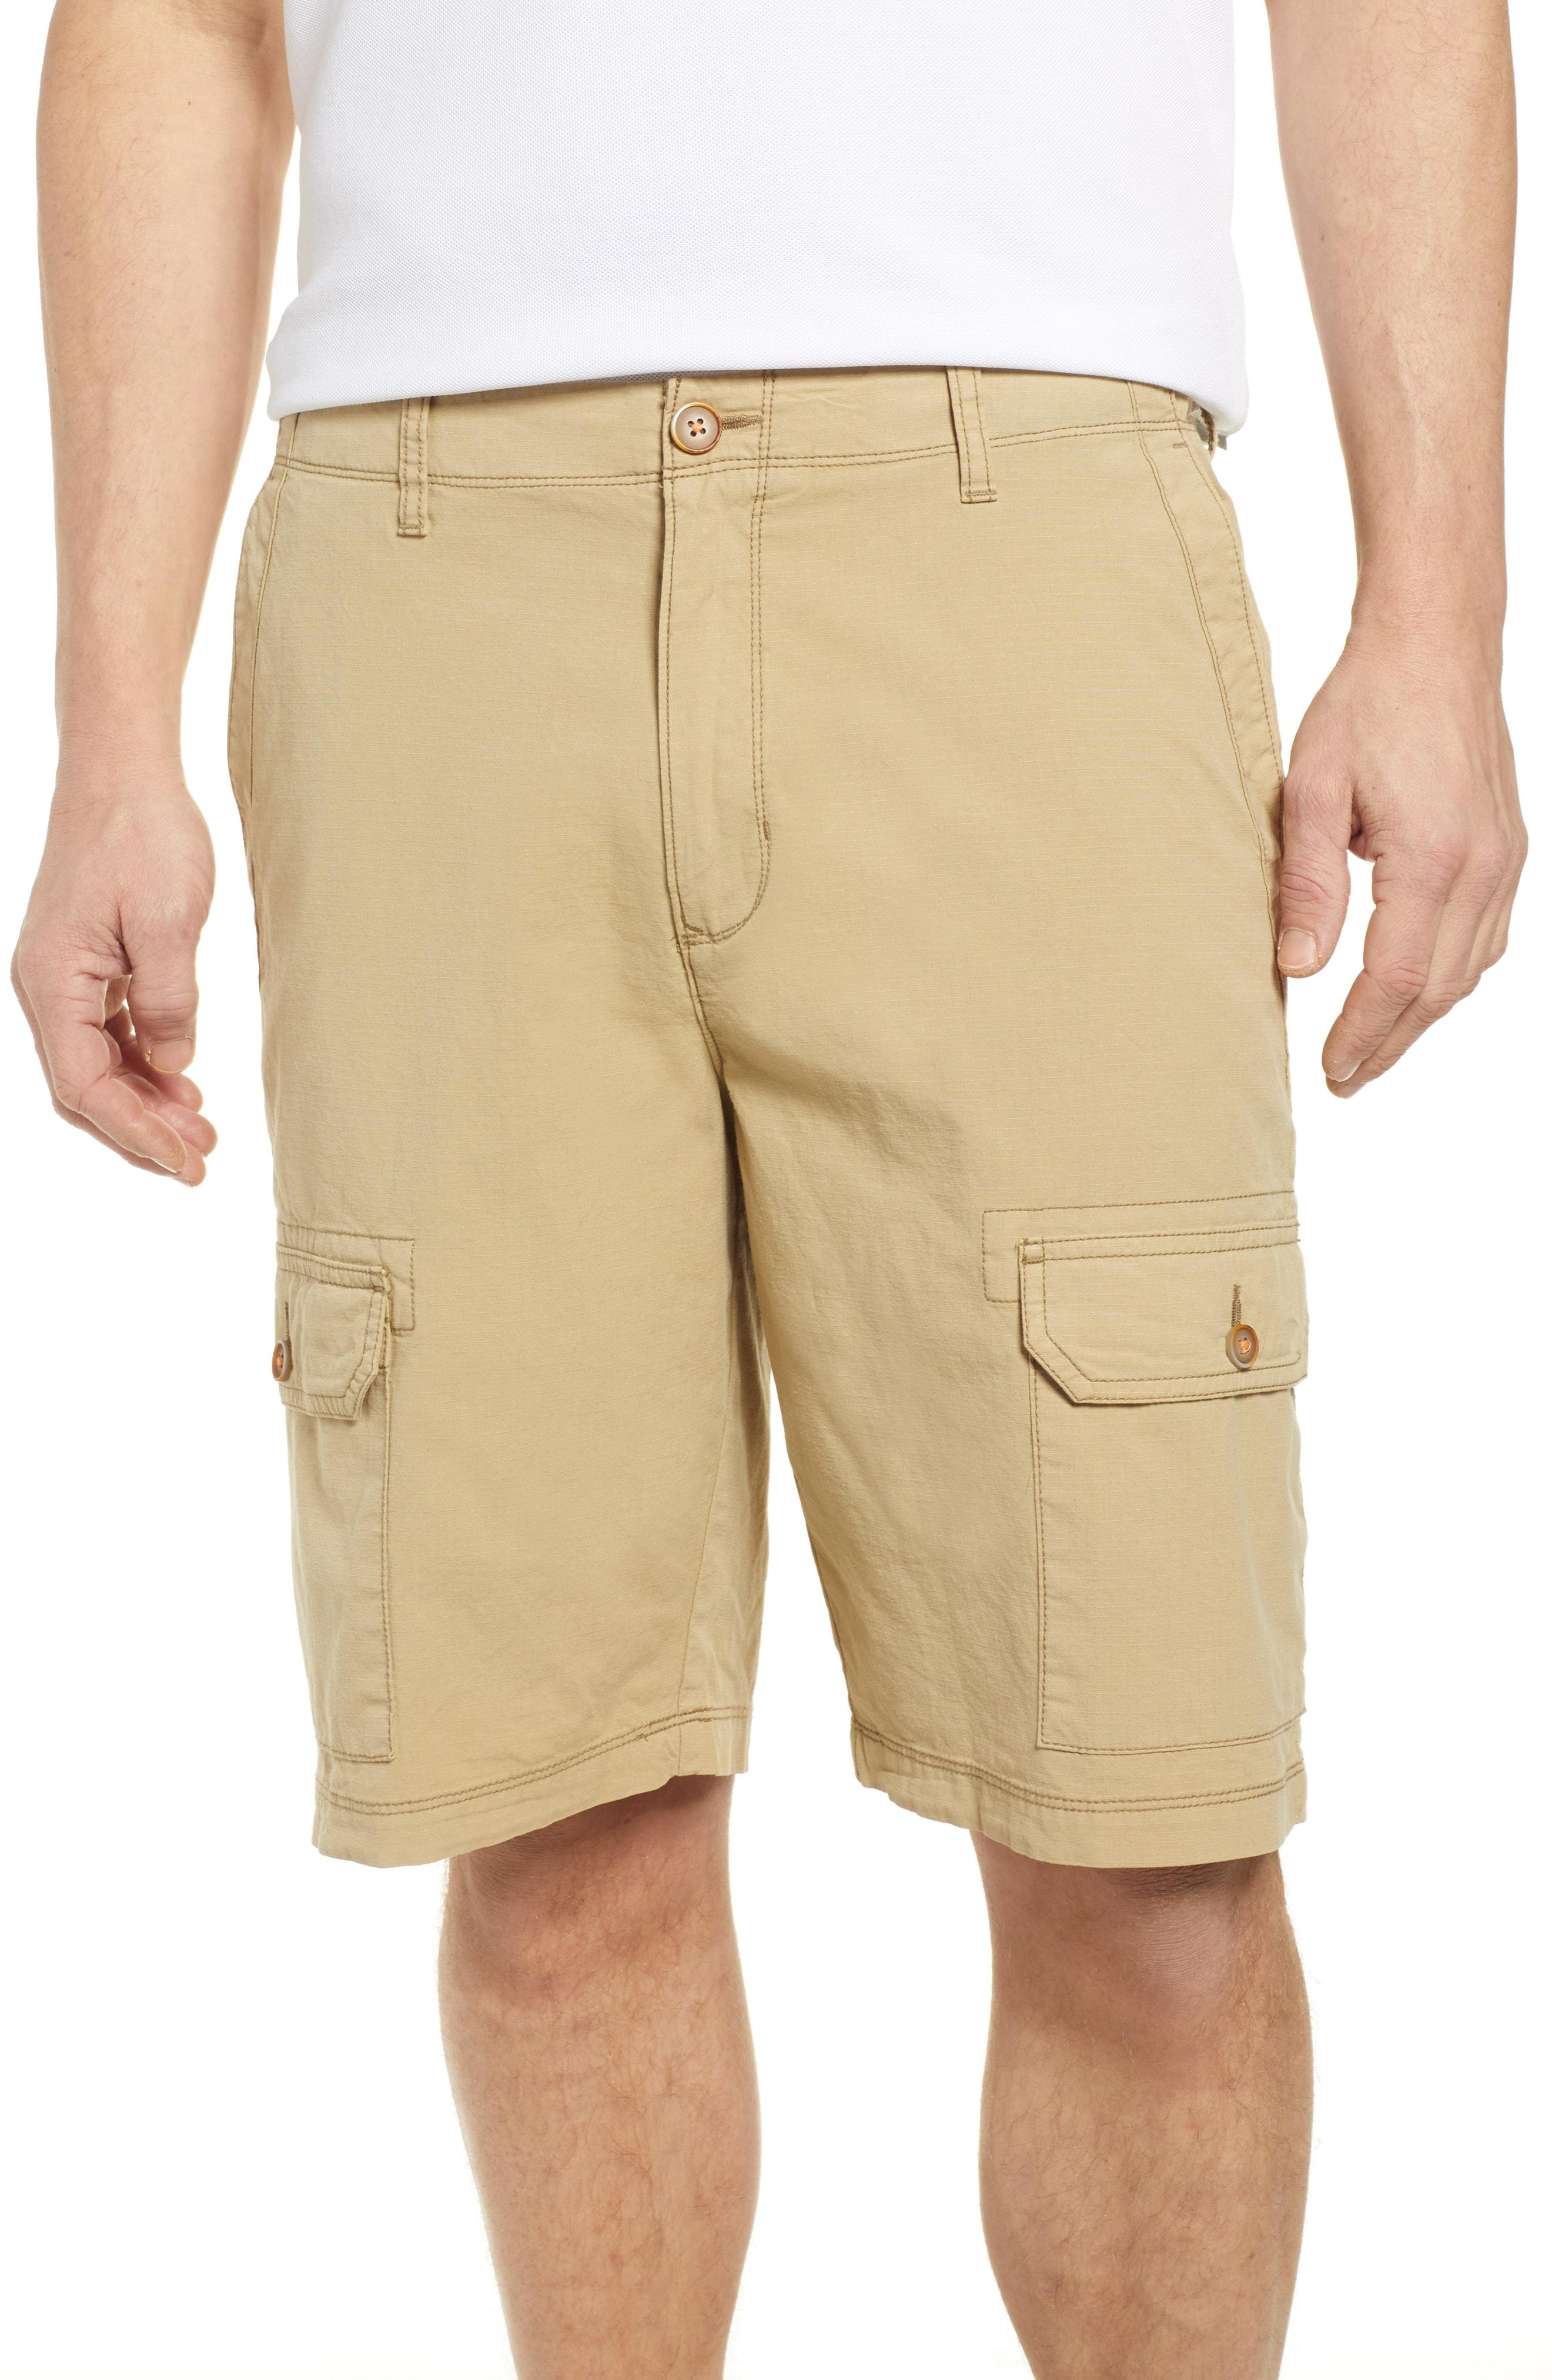 60a361fba8 Tommy Bahama. Men's Natural Riptide Classic Fit Ripstop Cargo Shorts